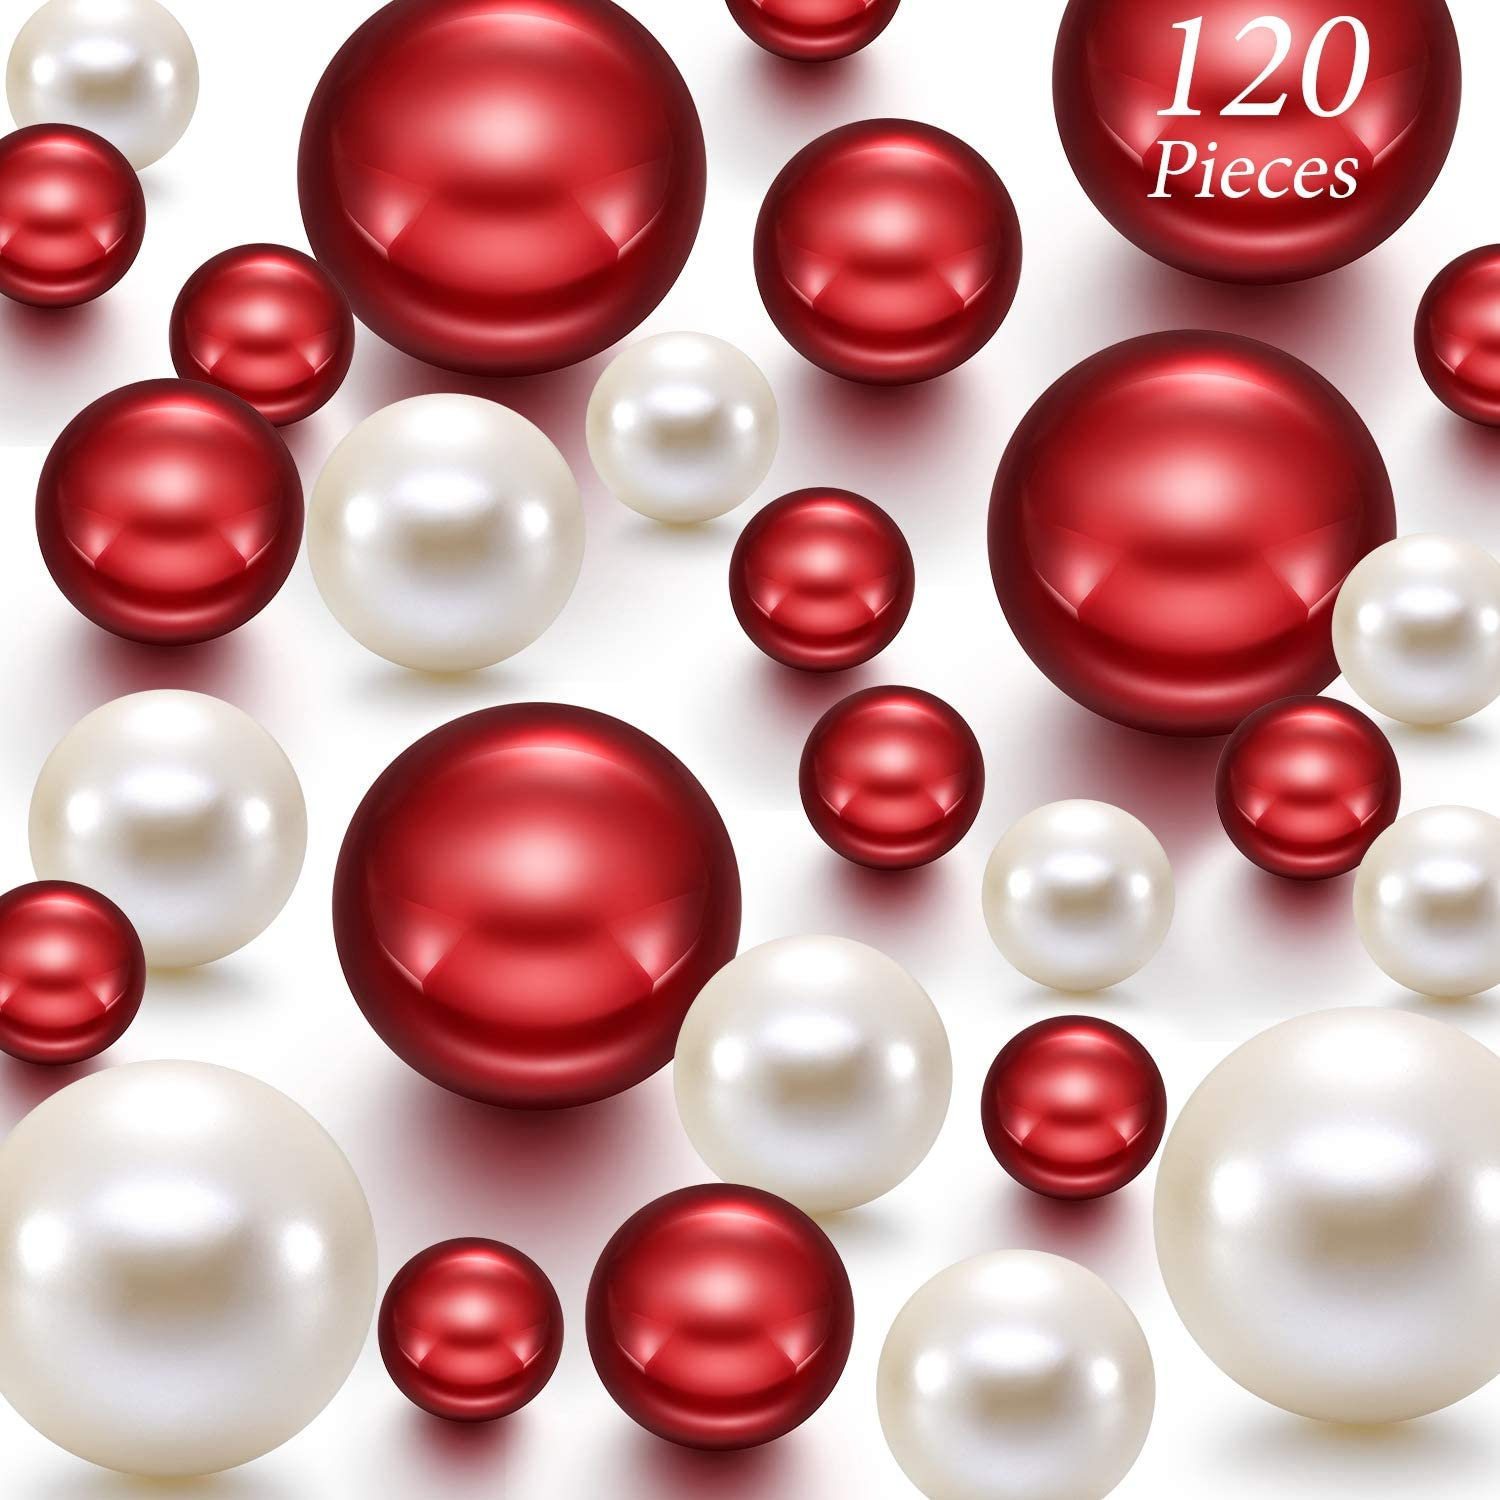 Hicarer 120 Pieces Pearl for Vase Filler Pearls Bead for Vase Makeup Beads for Brushes Holder Assorted Round Faux Pearl Beads for Home Wedding Decor, 14 MM 20 MM 30 MM (Creamy White, Bright Red)